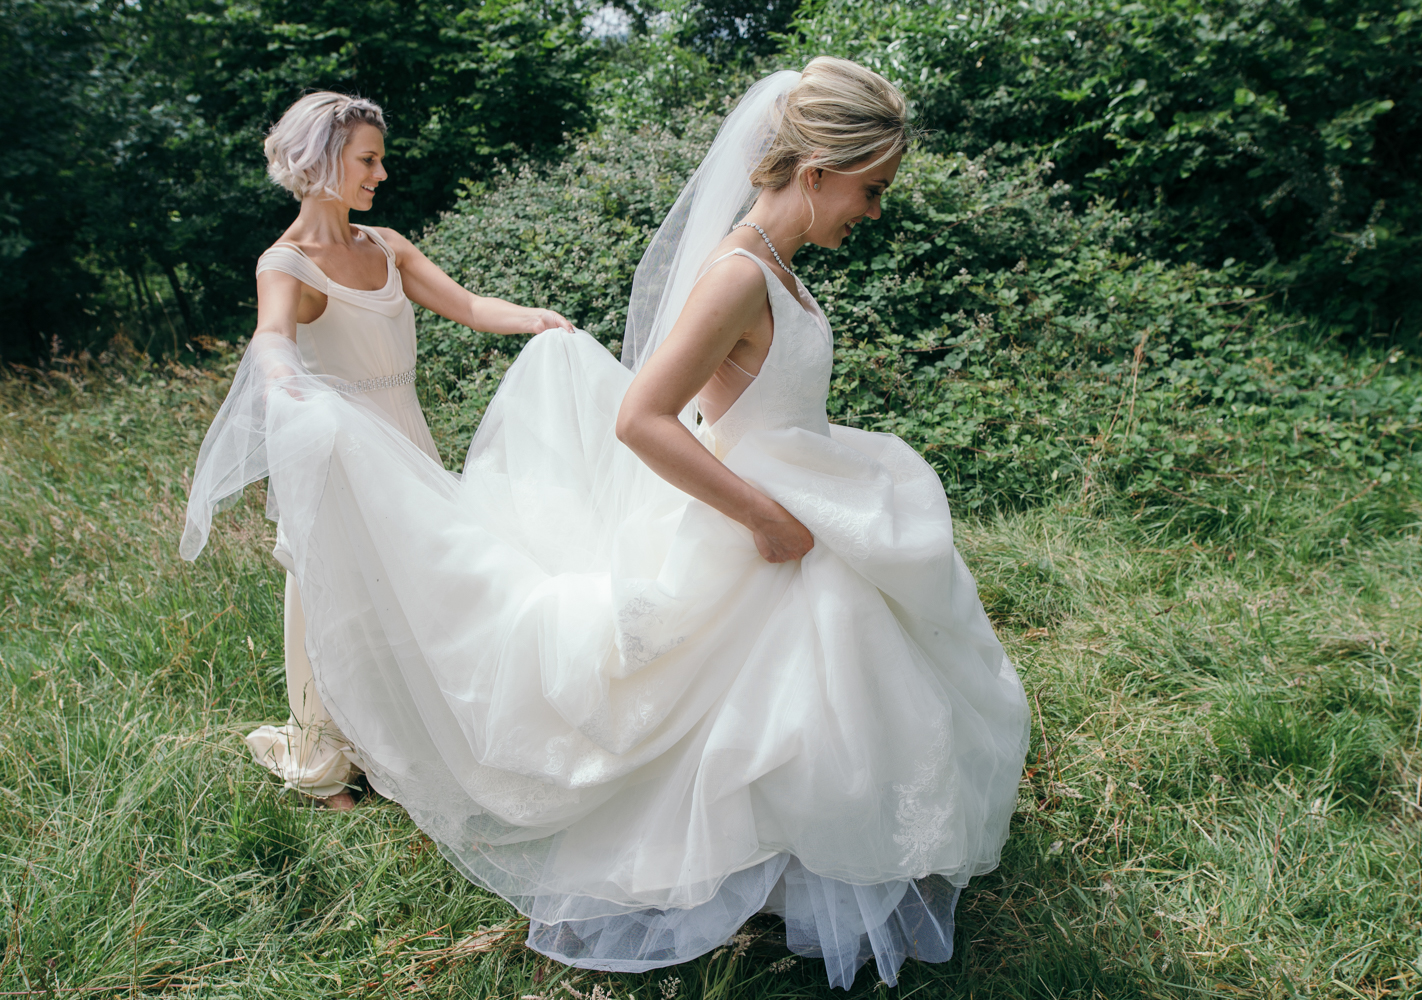 A bridesmaid helping the bride with her wedding dress during the couples portrait shoot